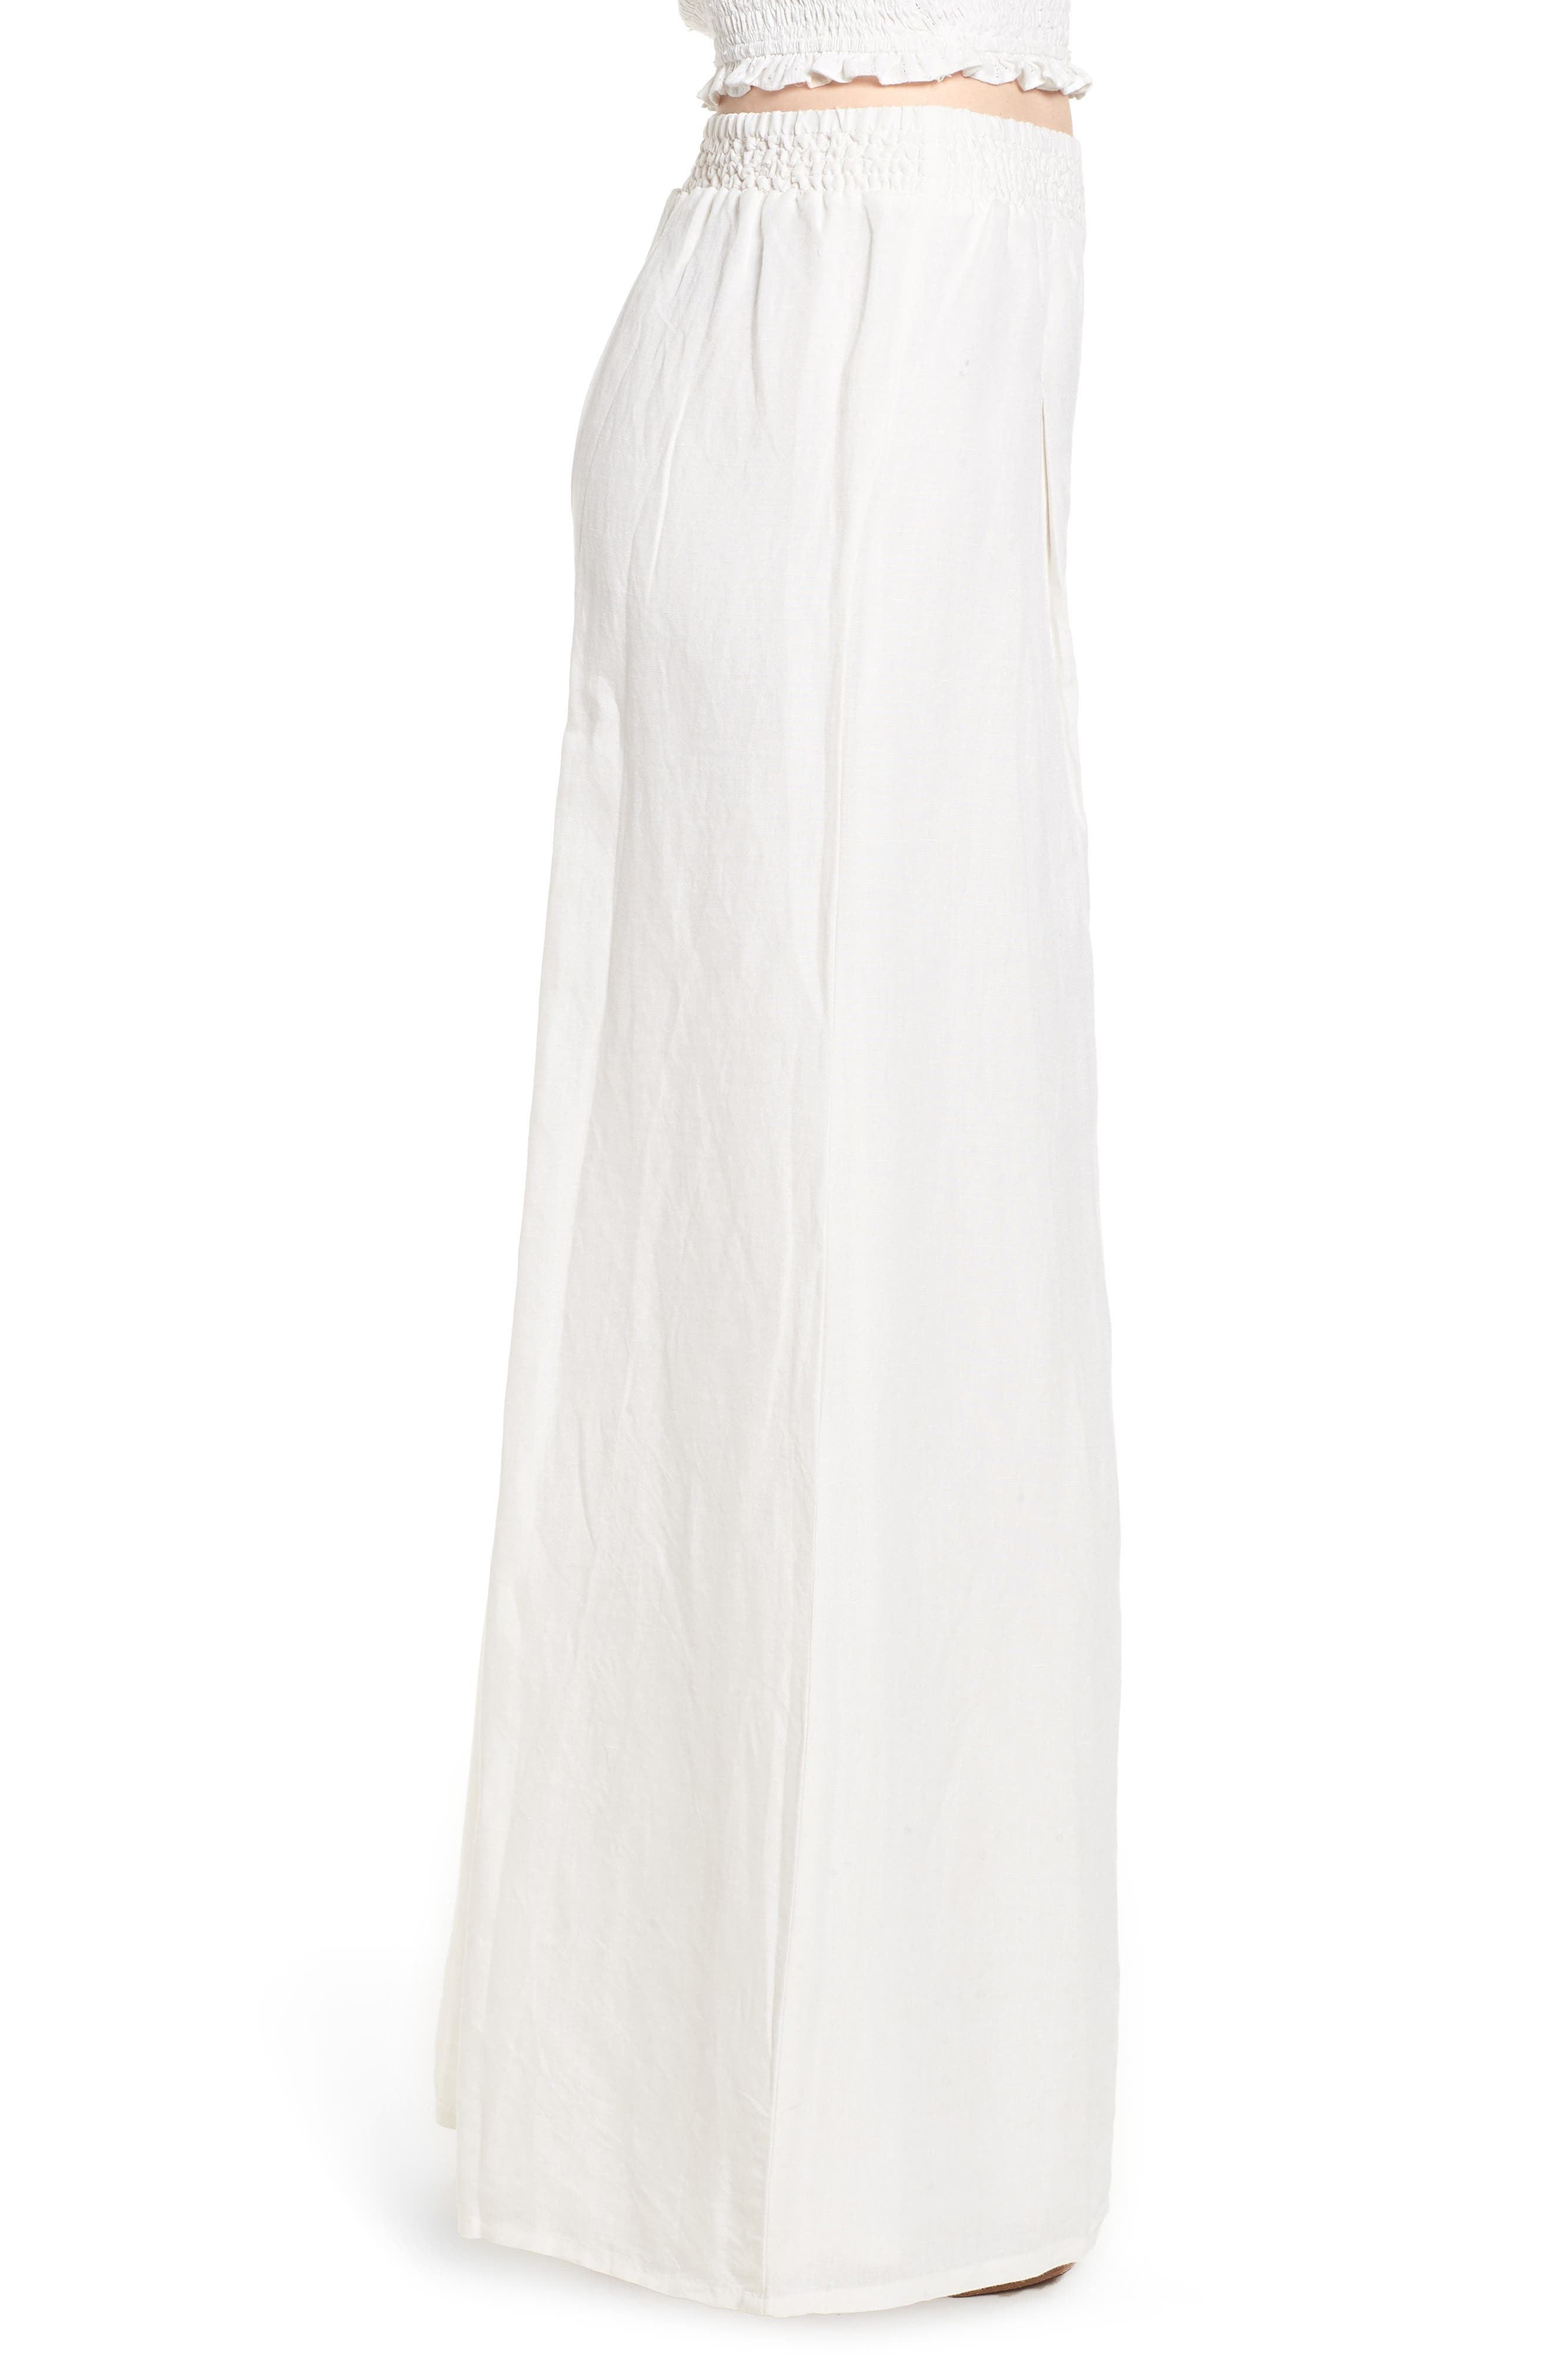 High Roads Smocked Wide Leg Pants,                             Alternate thumbnail 3, color,                             Cool Whip